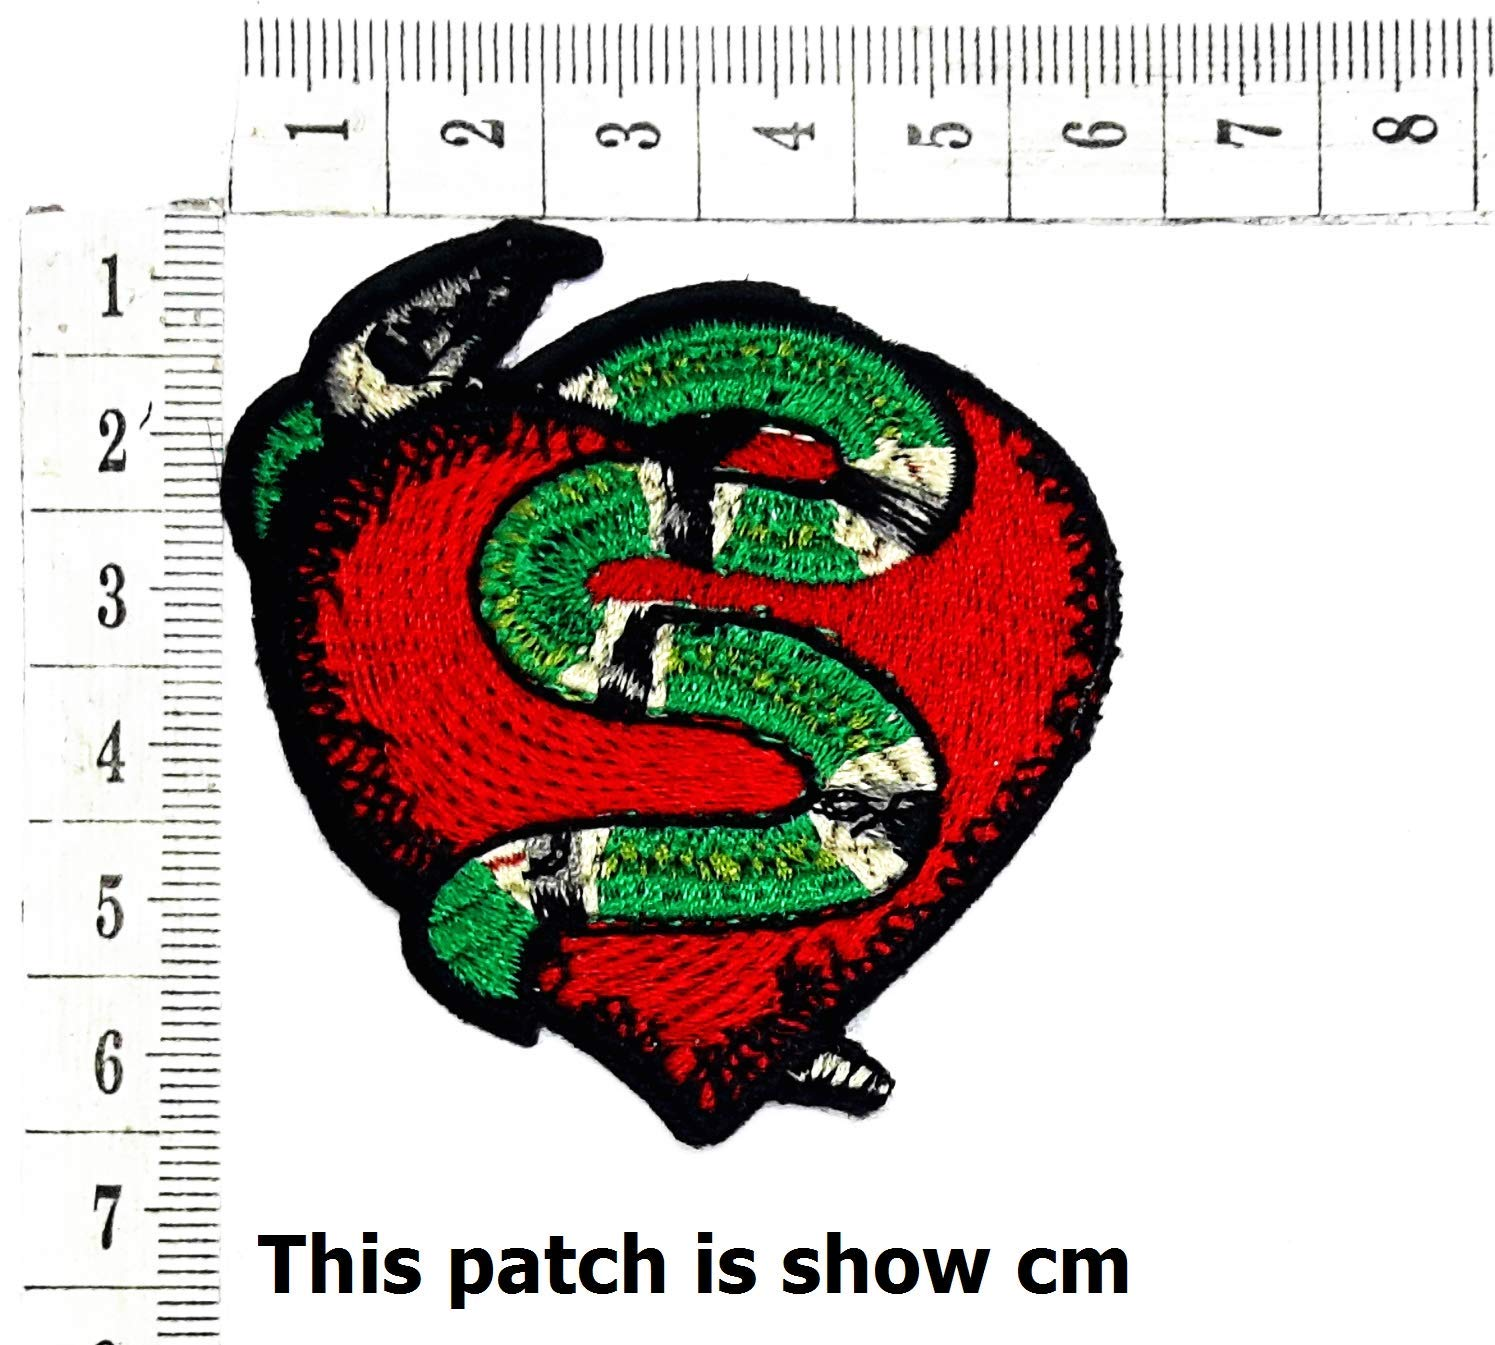 7a5395d53 Get Quotations · Red Heart Snake Snake Wild Animals Zoo Cartoon Chidren  Kids Embroidren Iron Patch/Logo Sew